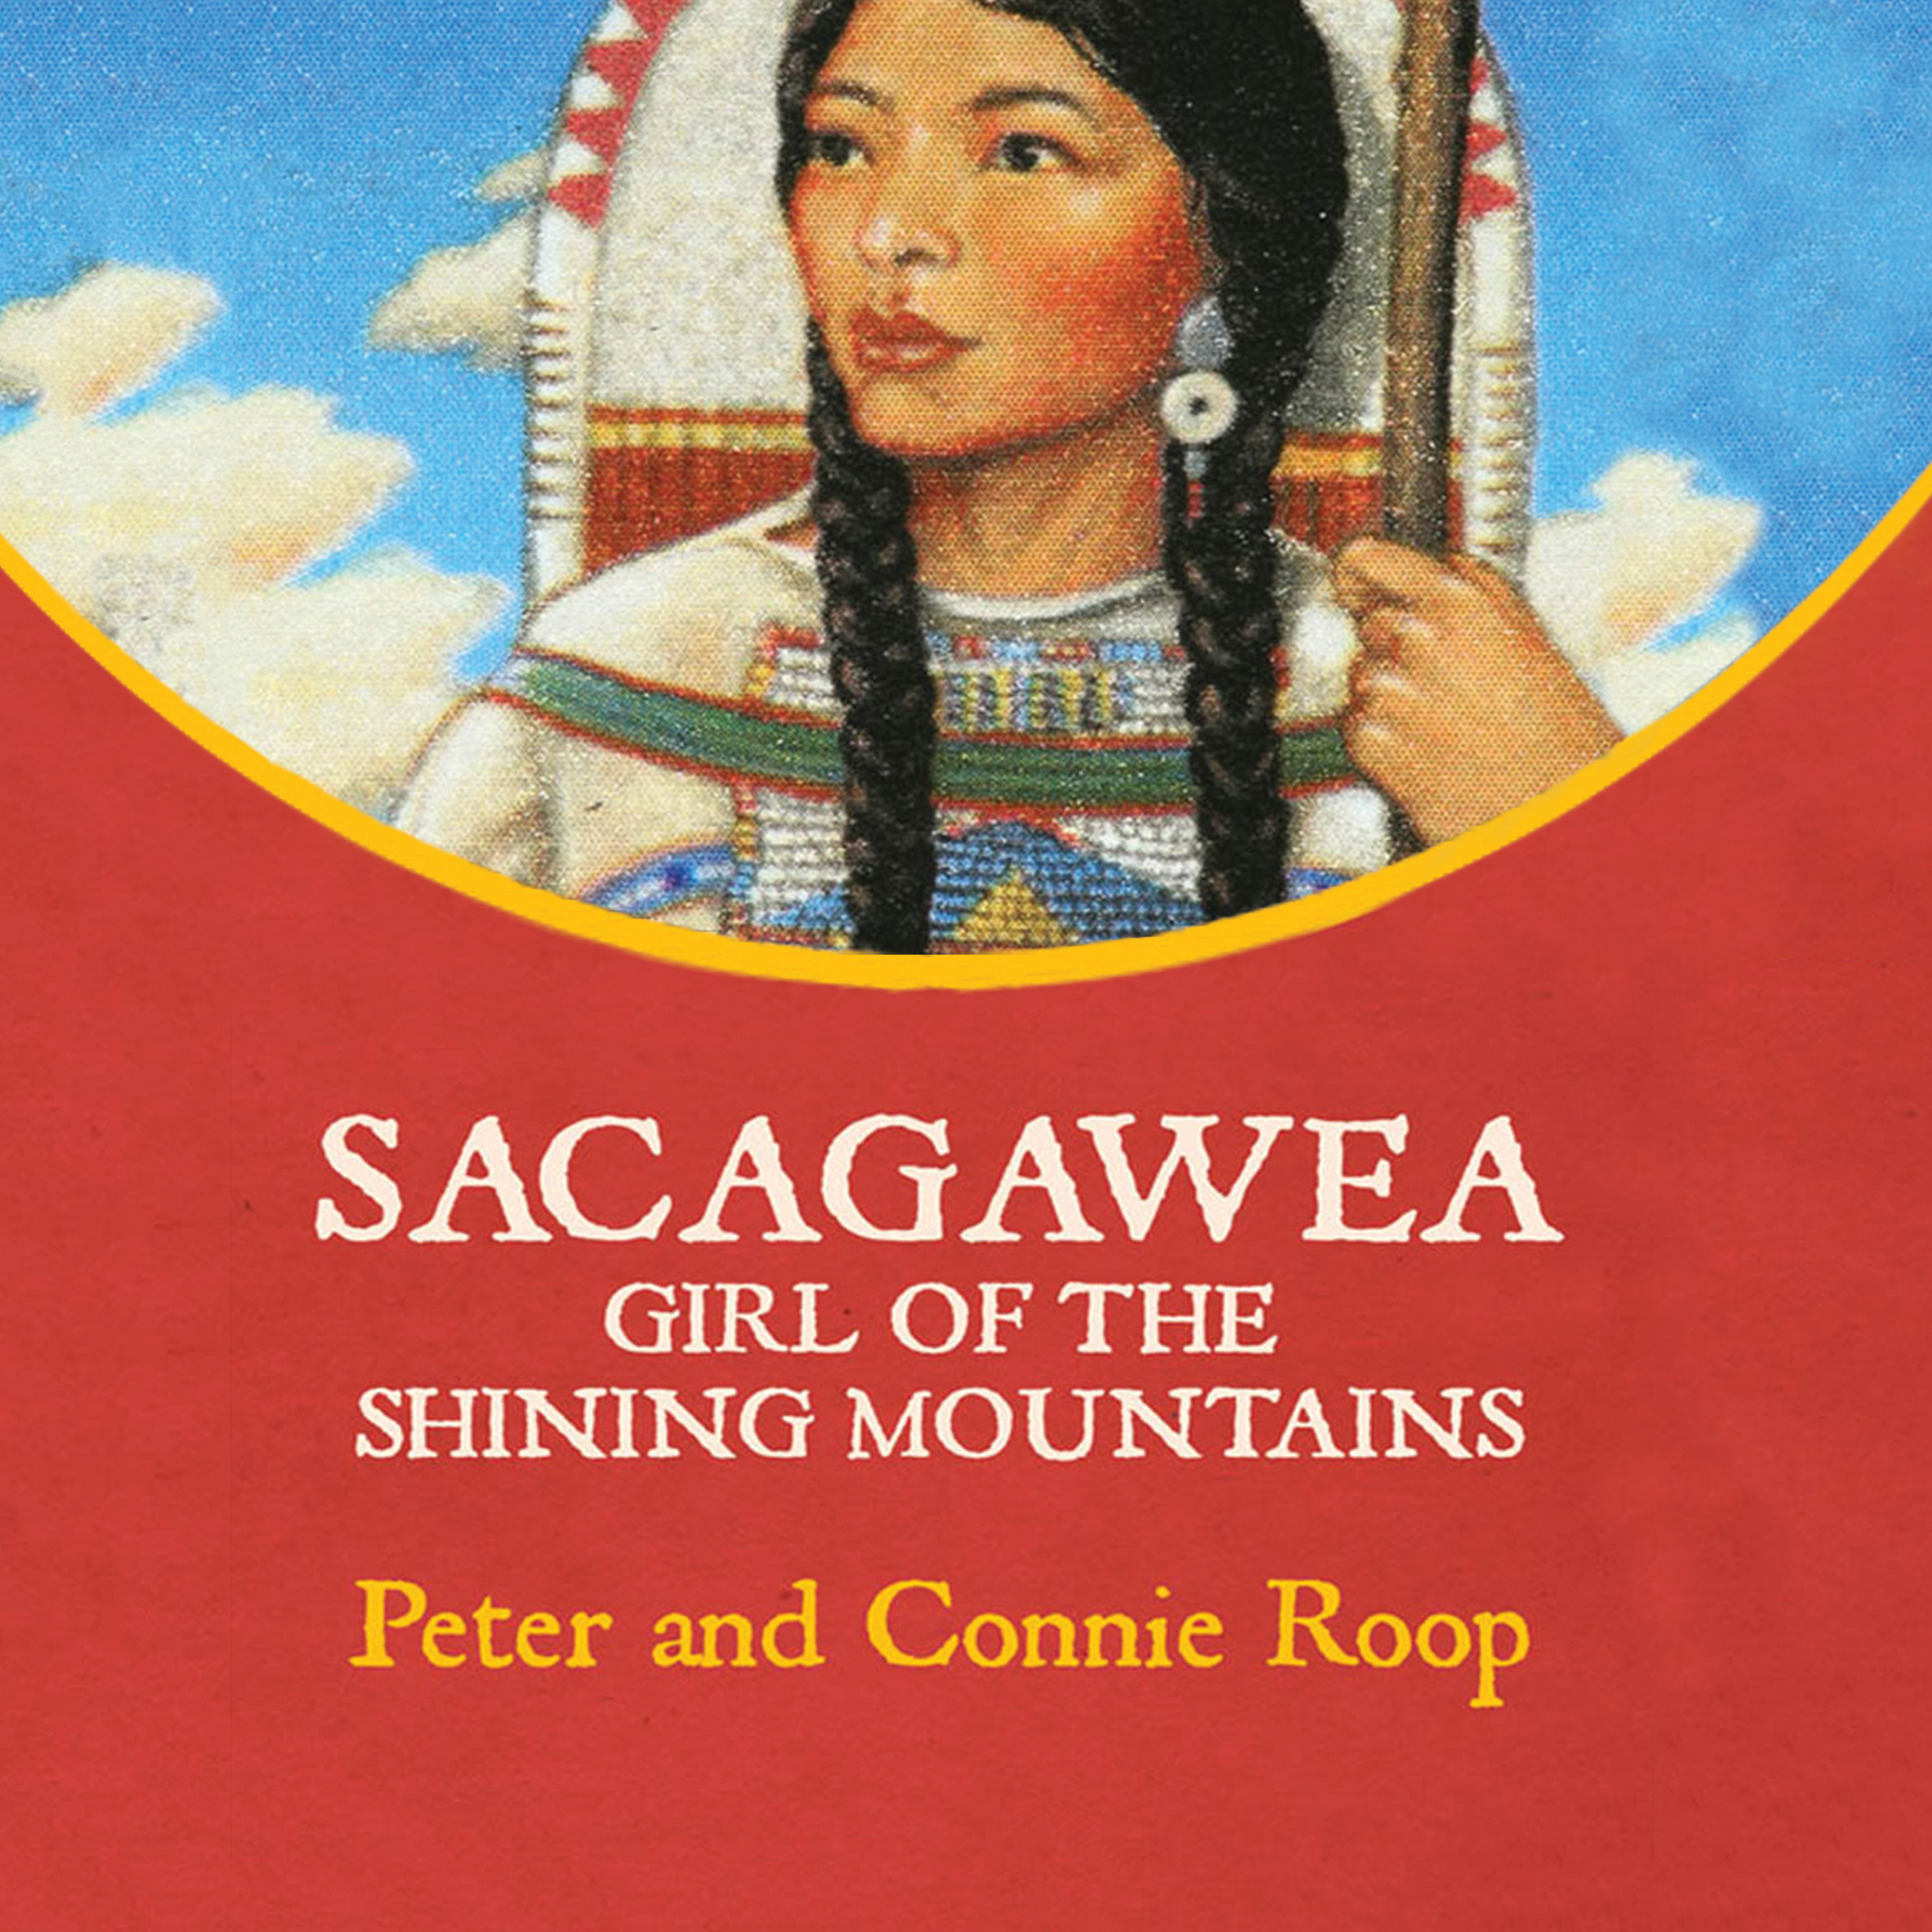 Printable Sacagawea: Girl of the Shining Mountains Audiobook Cover Art